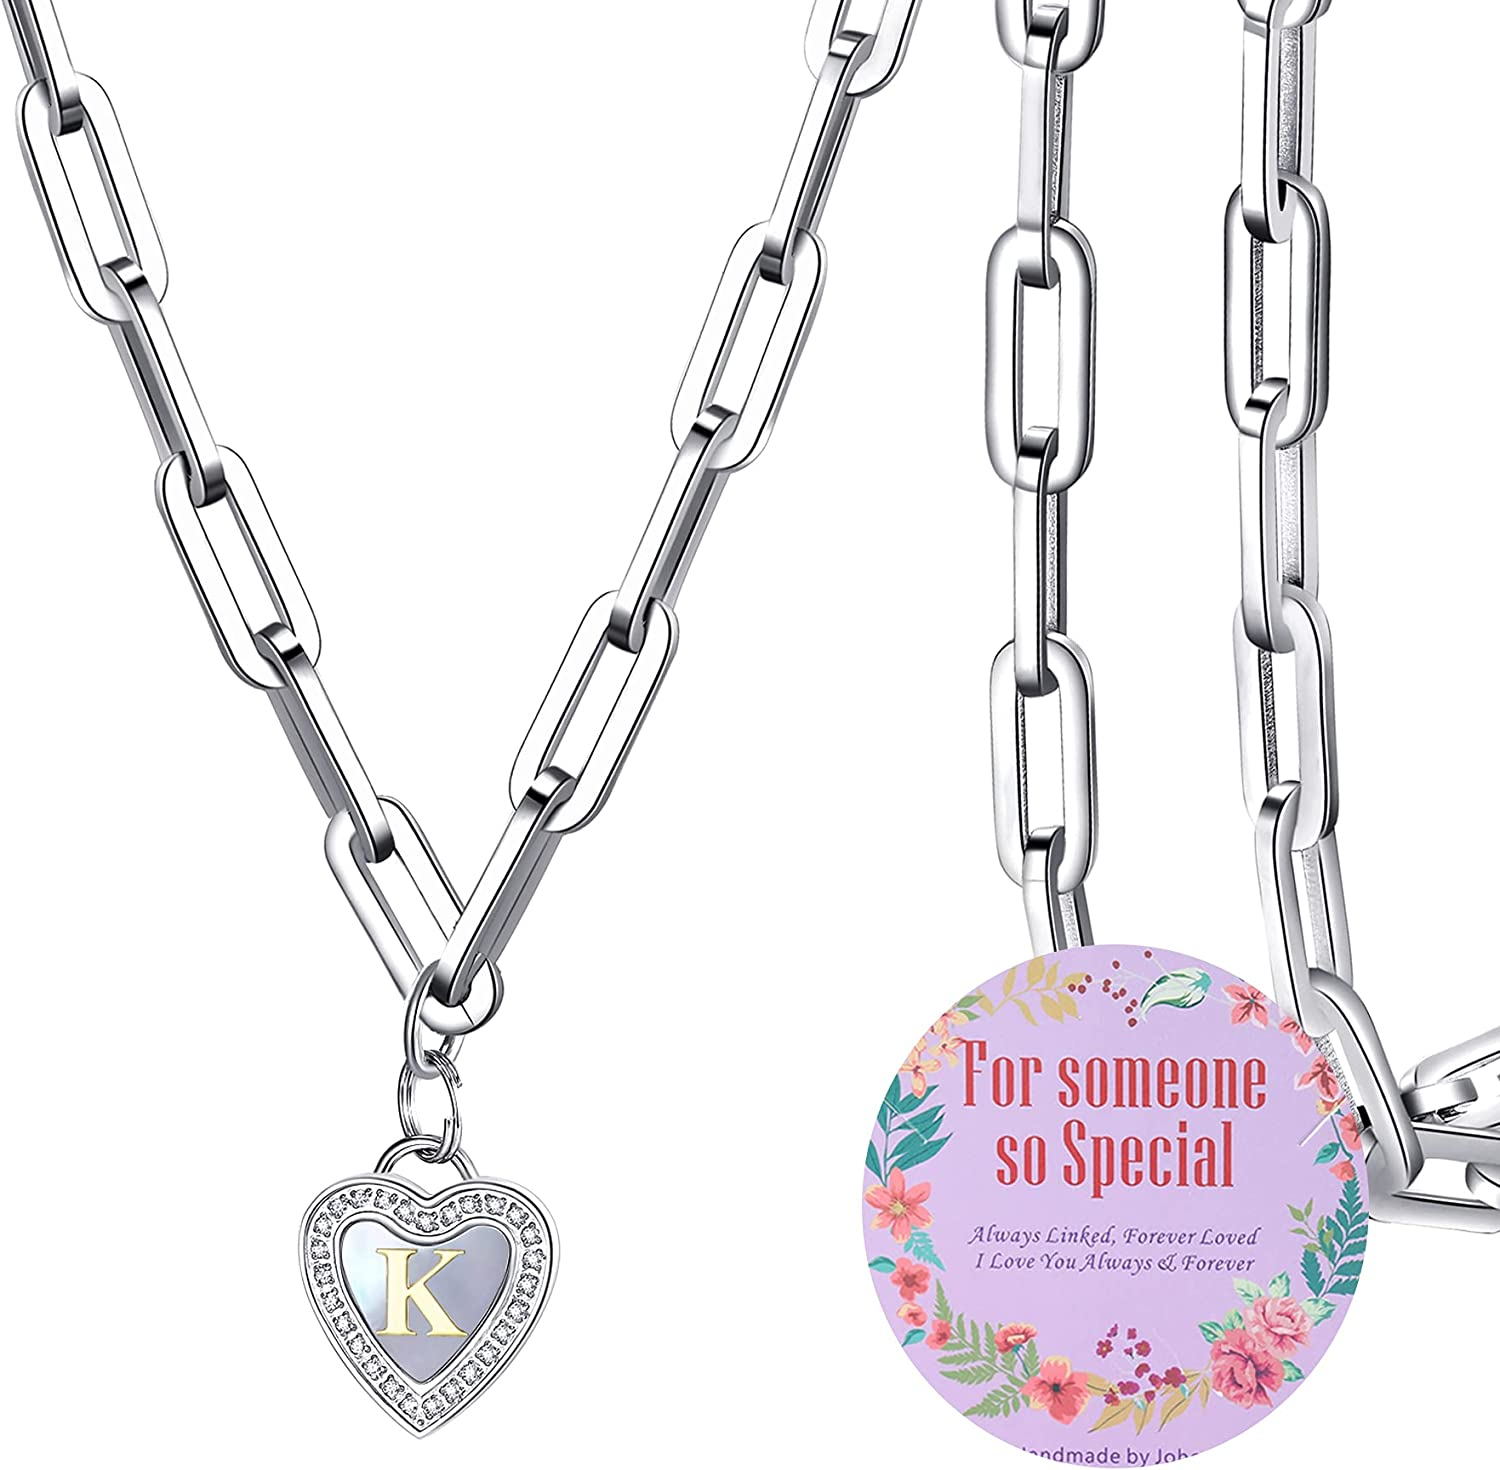 johoo Initial Heart Paperclip Chain - Necklace Excellence Pe Capital Letter Quality inspection